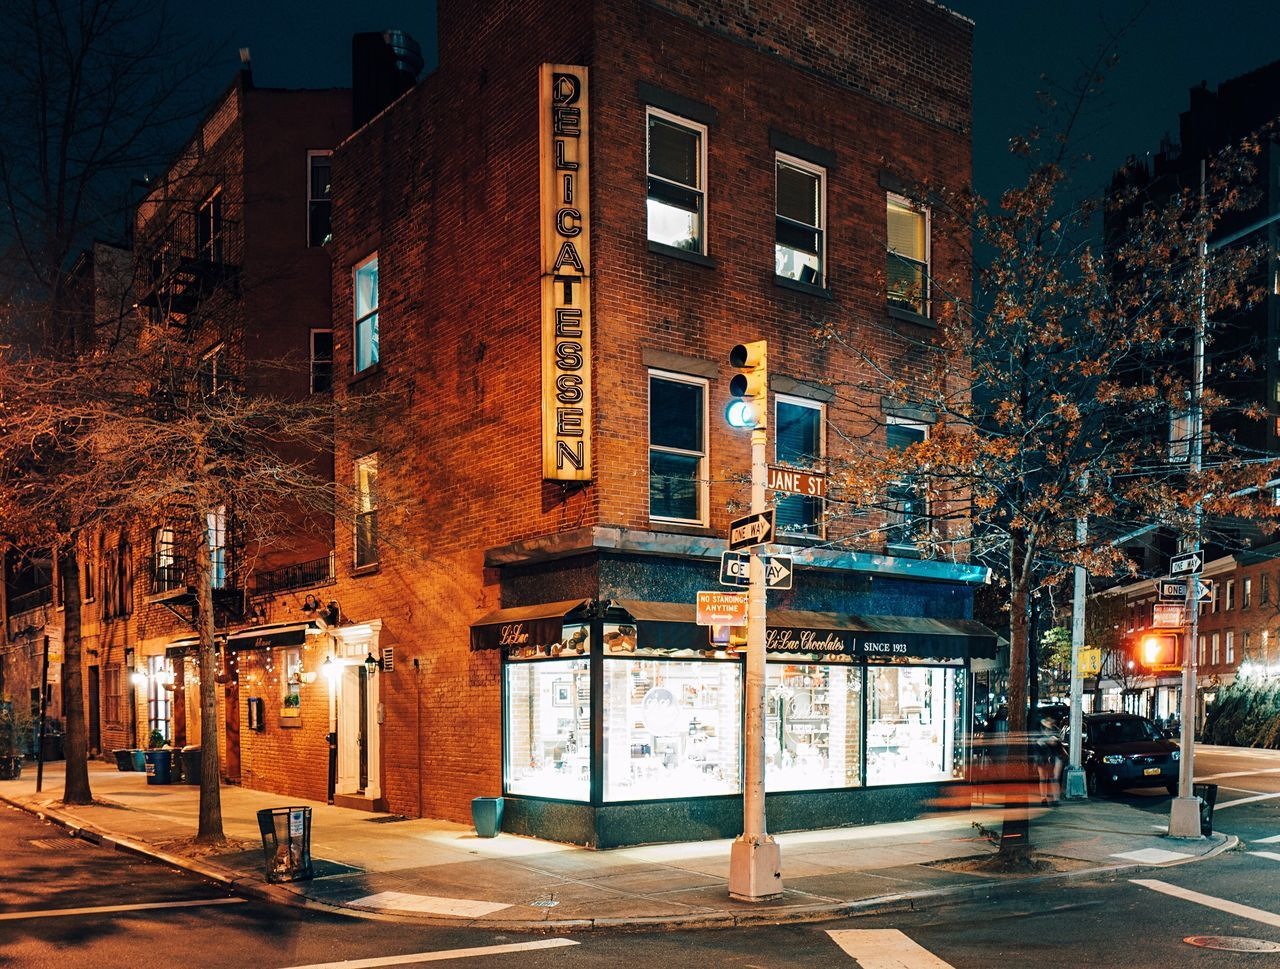 Delicatessen Corner Street New York City Night Photography Night Shot Brick Building Illuminated City Night Architecture No People